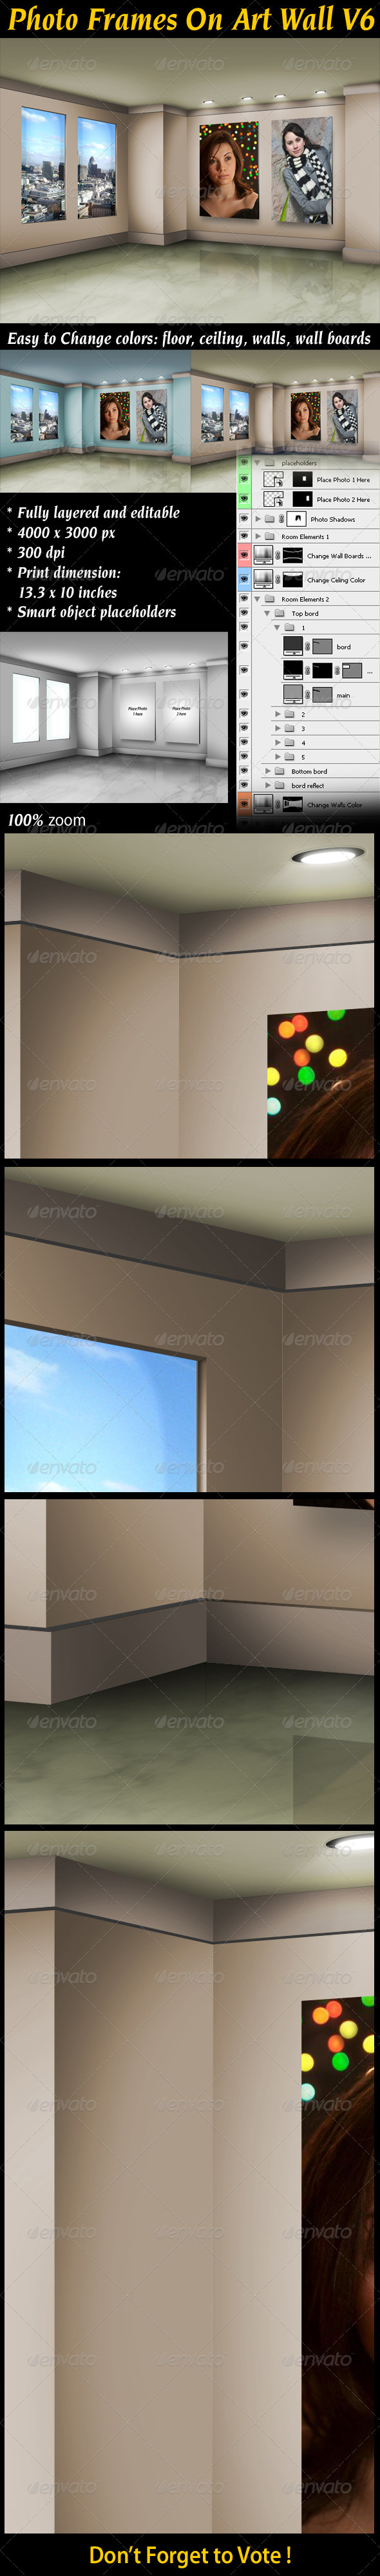 GraphicRiver Photo Frames On Art Wall V6 3480810